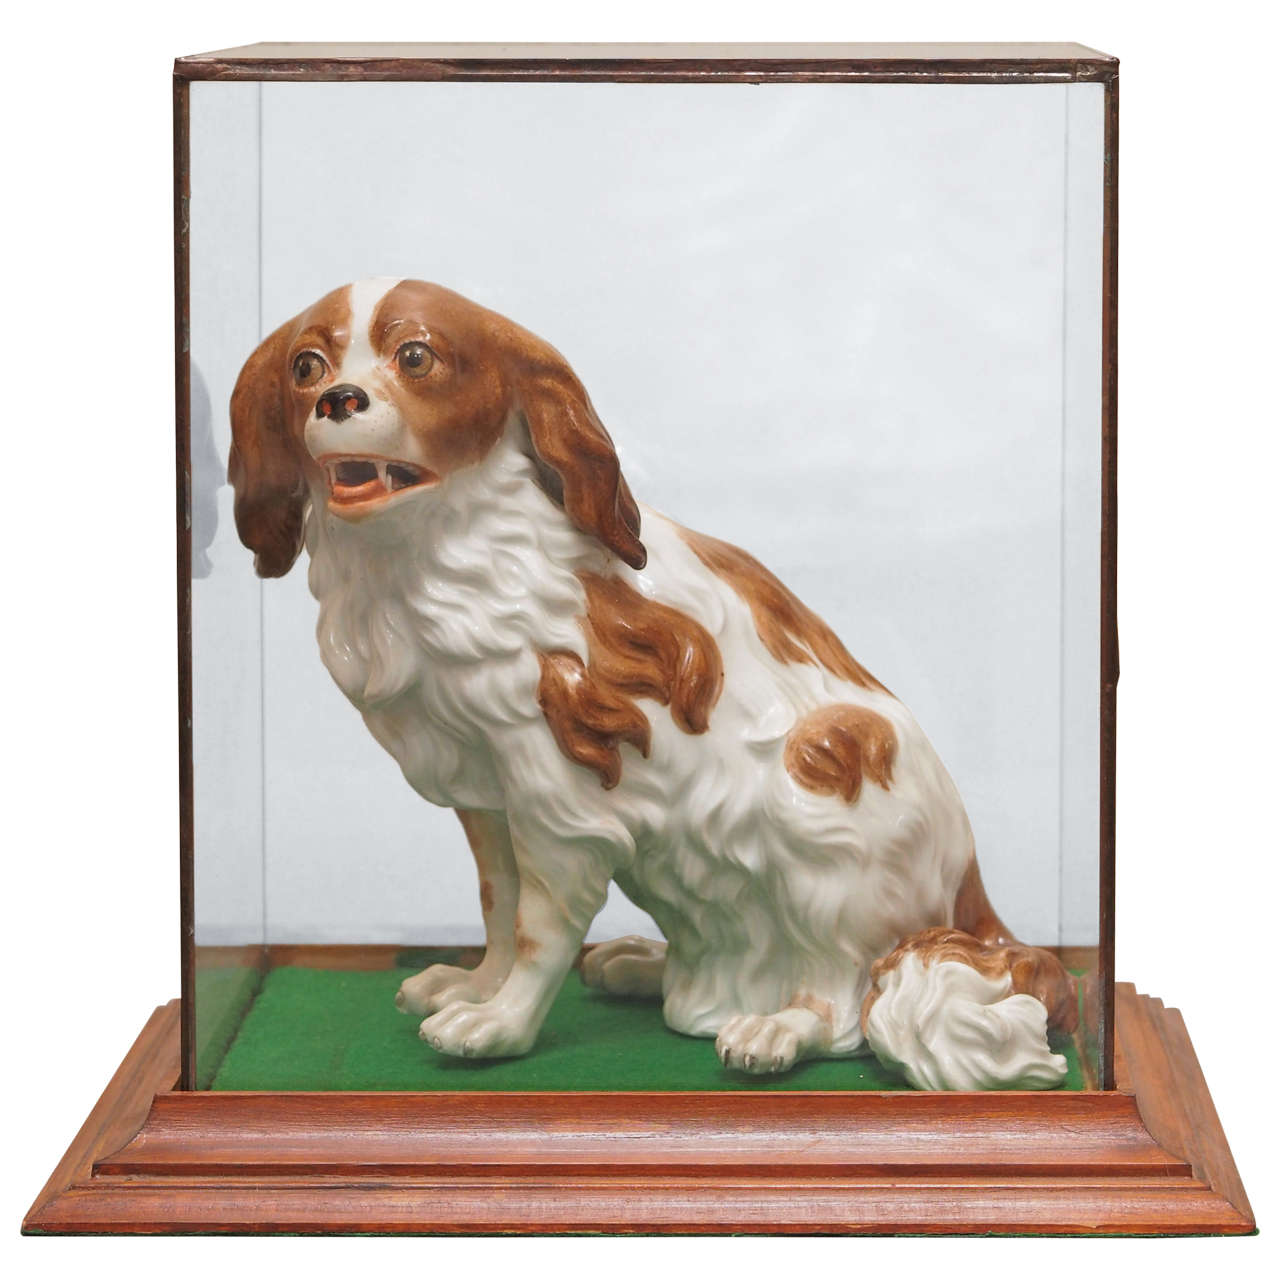 Vienna Porcelain figure of Cavalier King Charles Spaniel For Sale